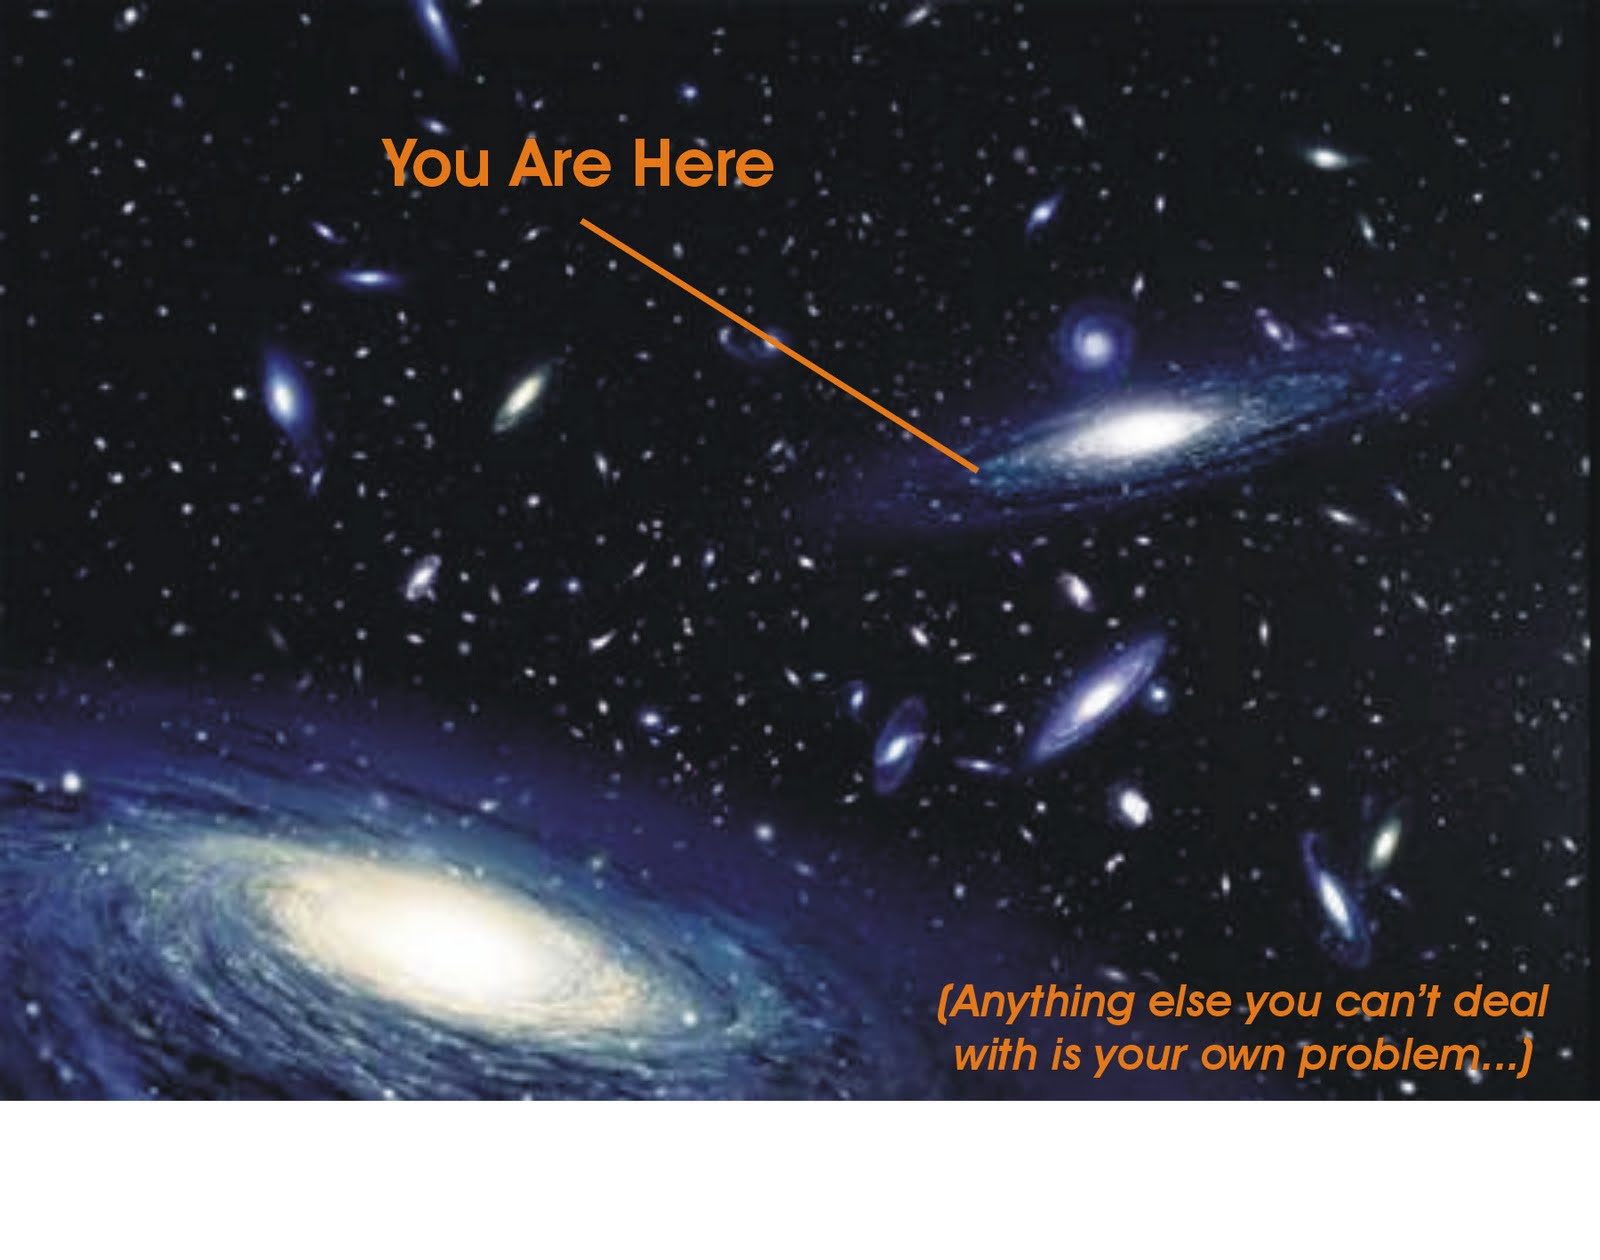 universe-you-are-hereUniverse You Are Here Poster